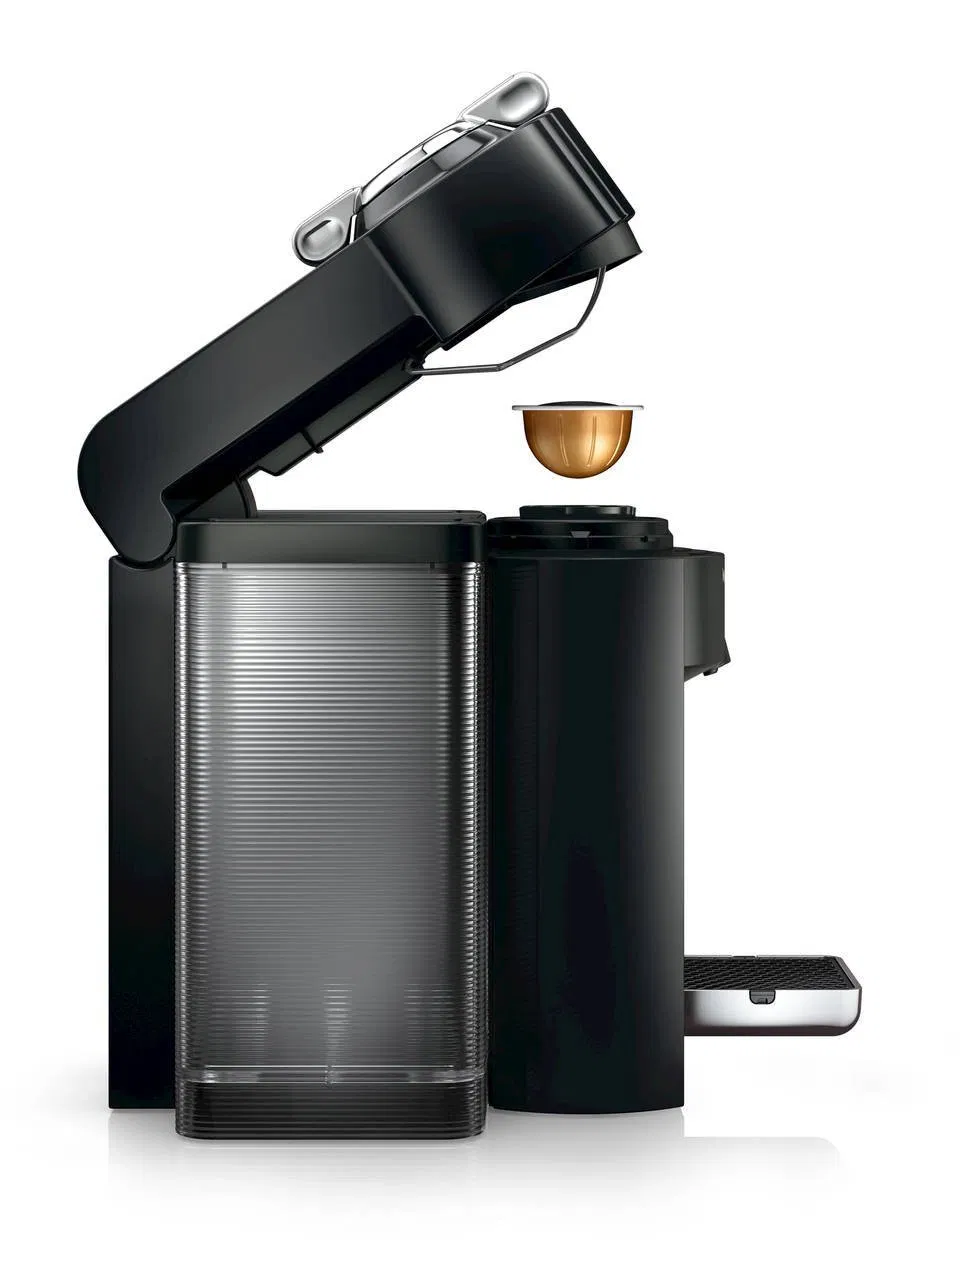 Nespresso Espresso Maker with Aeroccino Plus Milk Frother